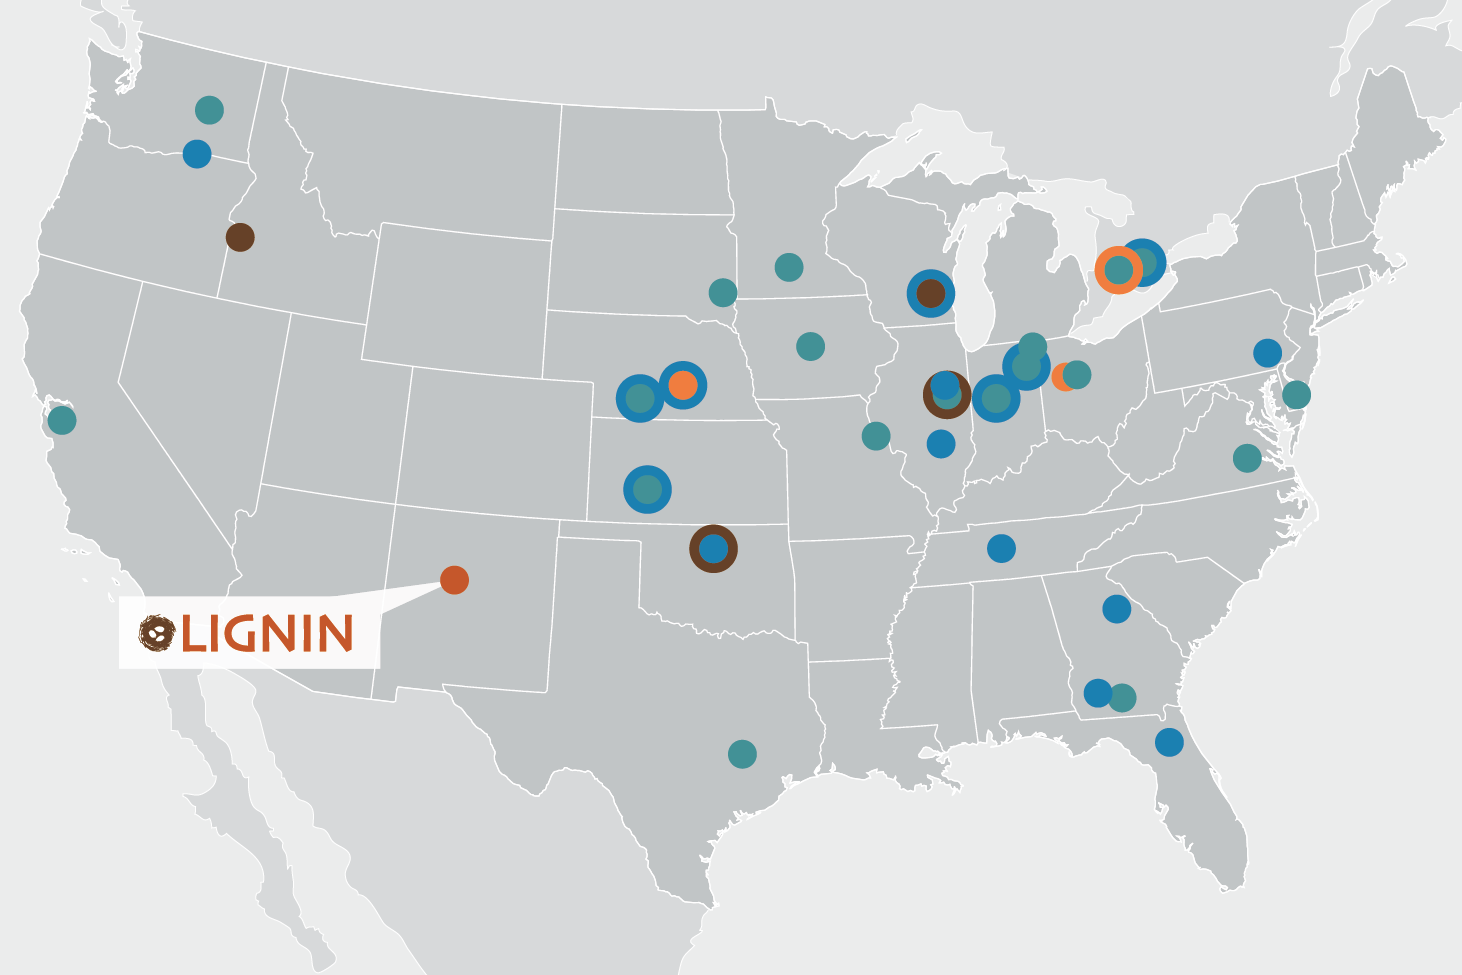 LIGNIN Instruments are all over the map!